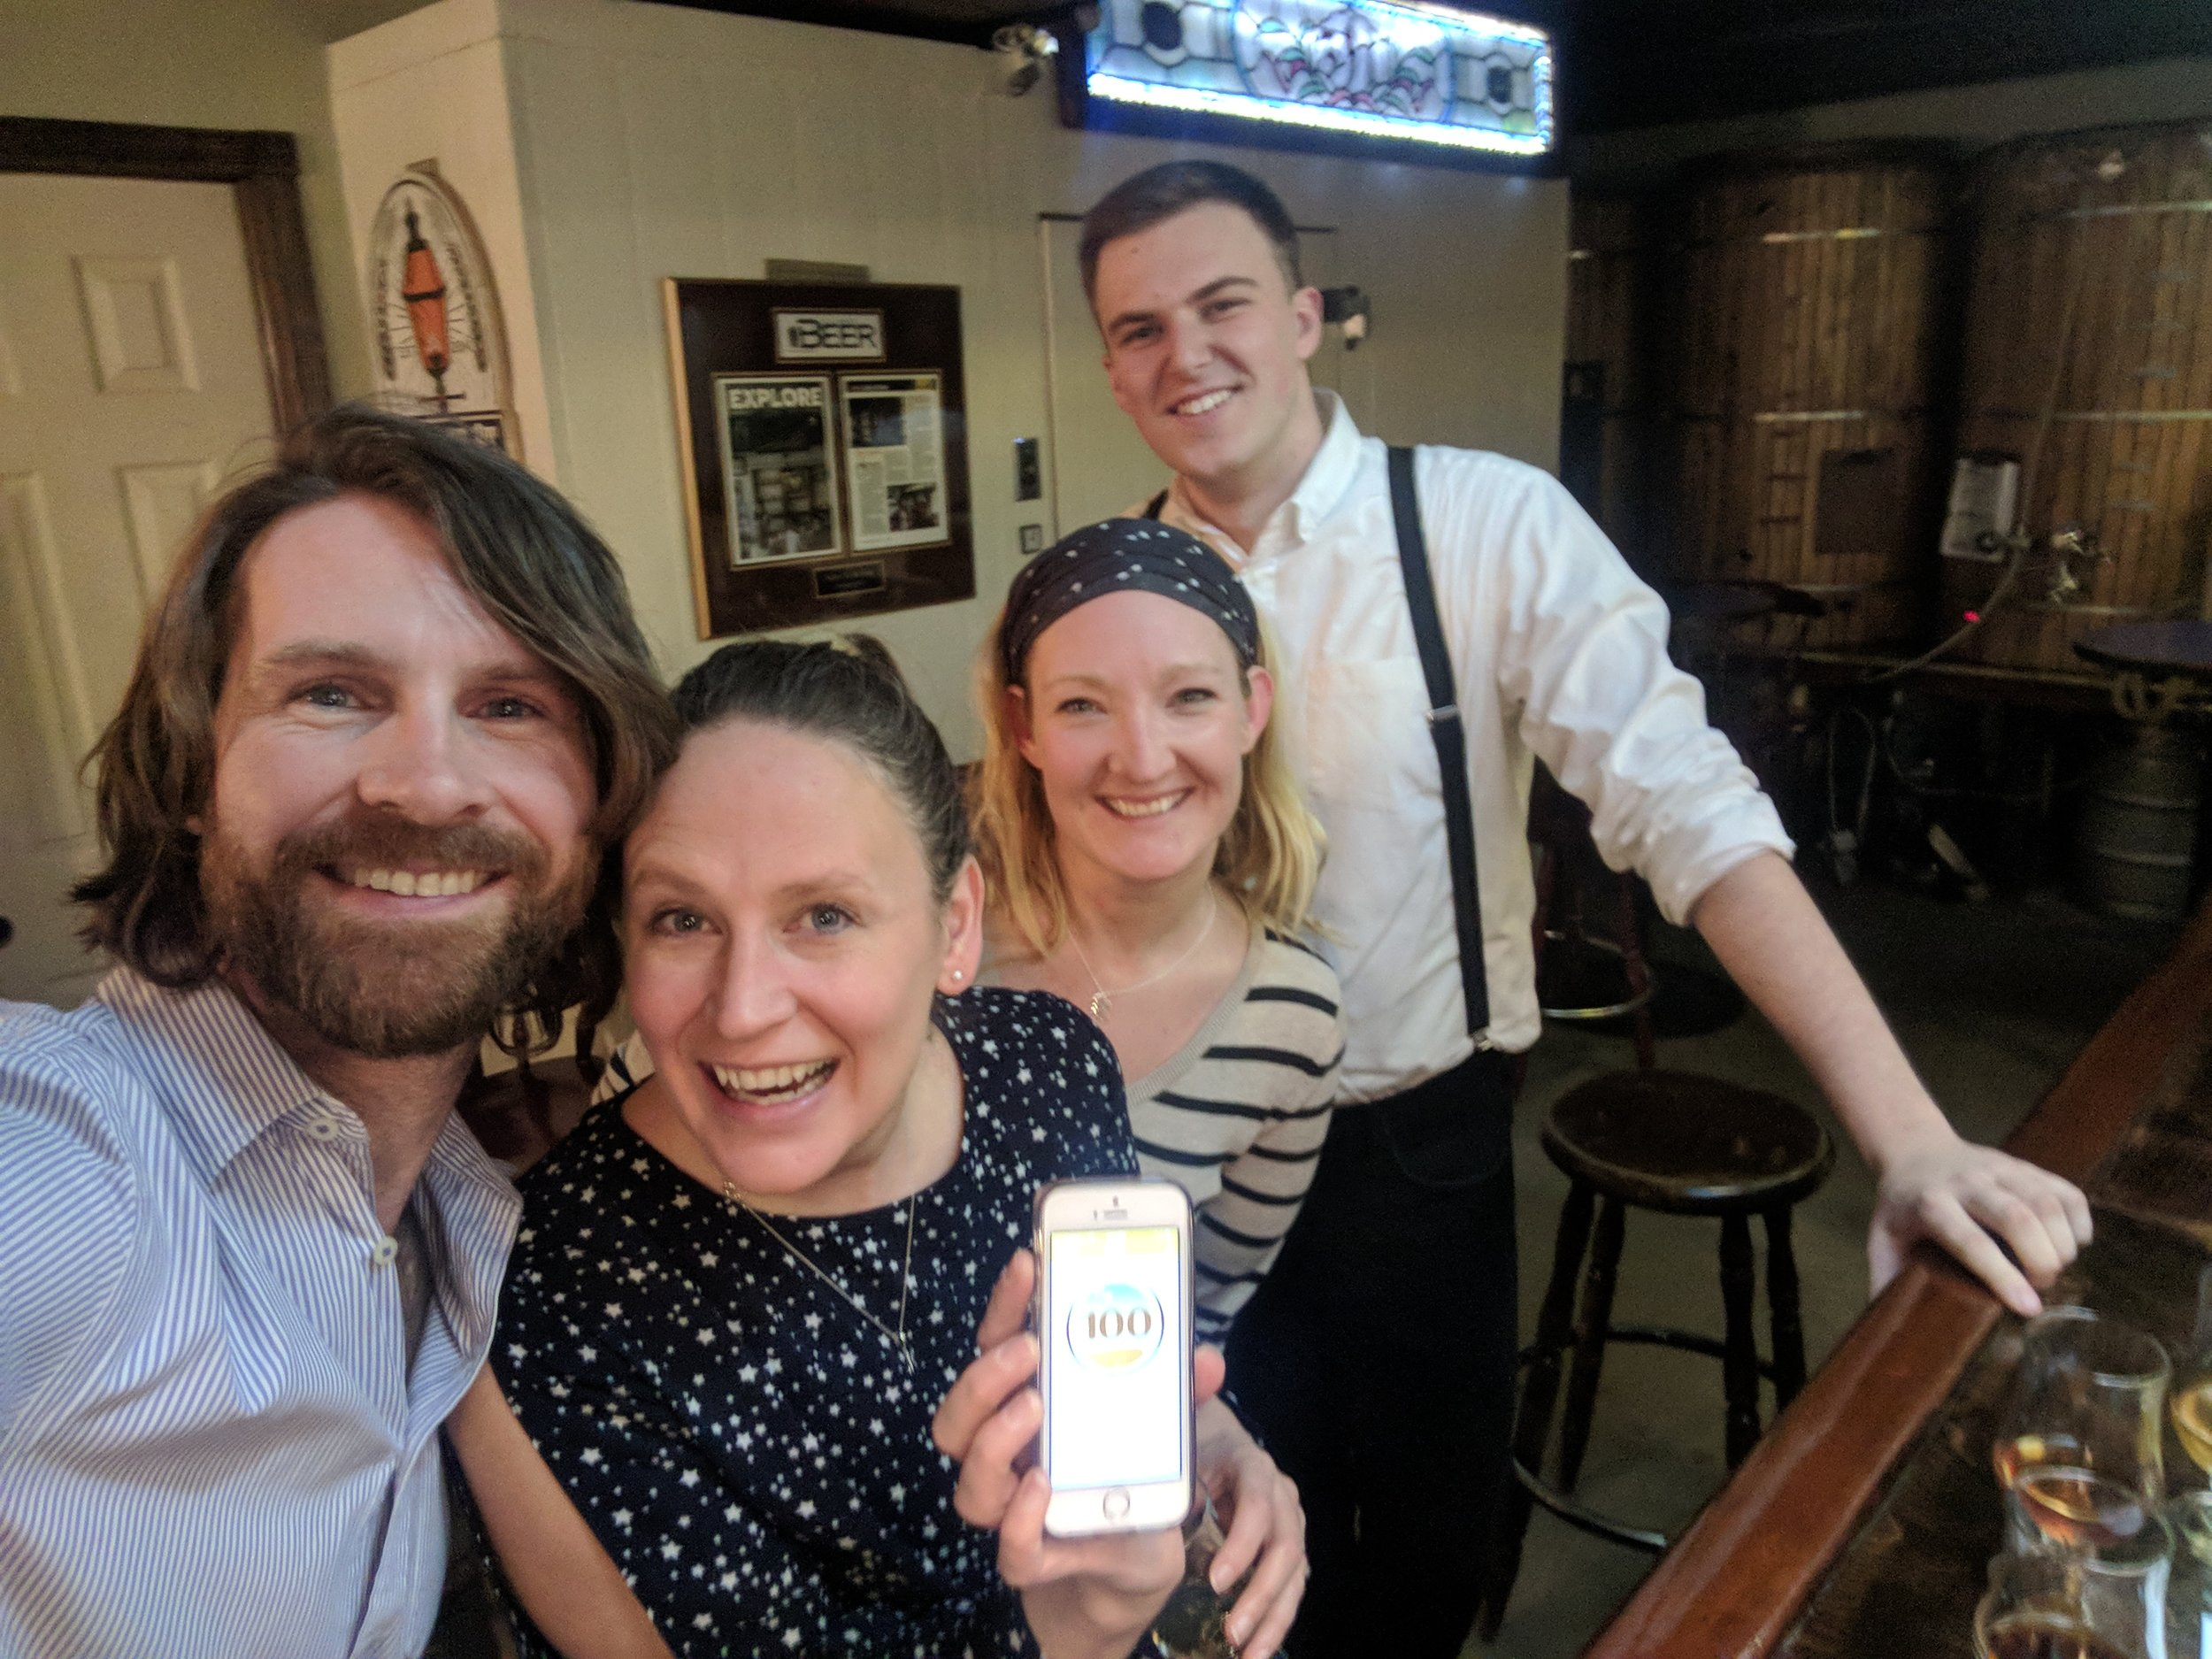 Celebrating 100 beer check-ins on Untappd